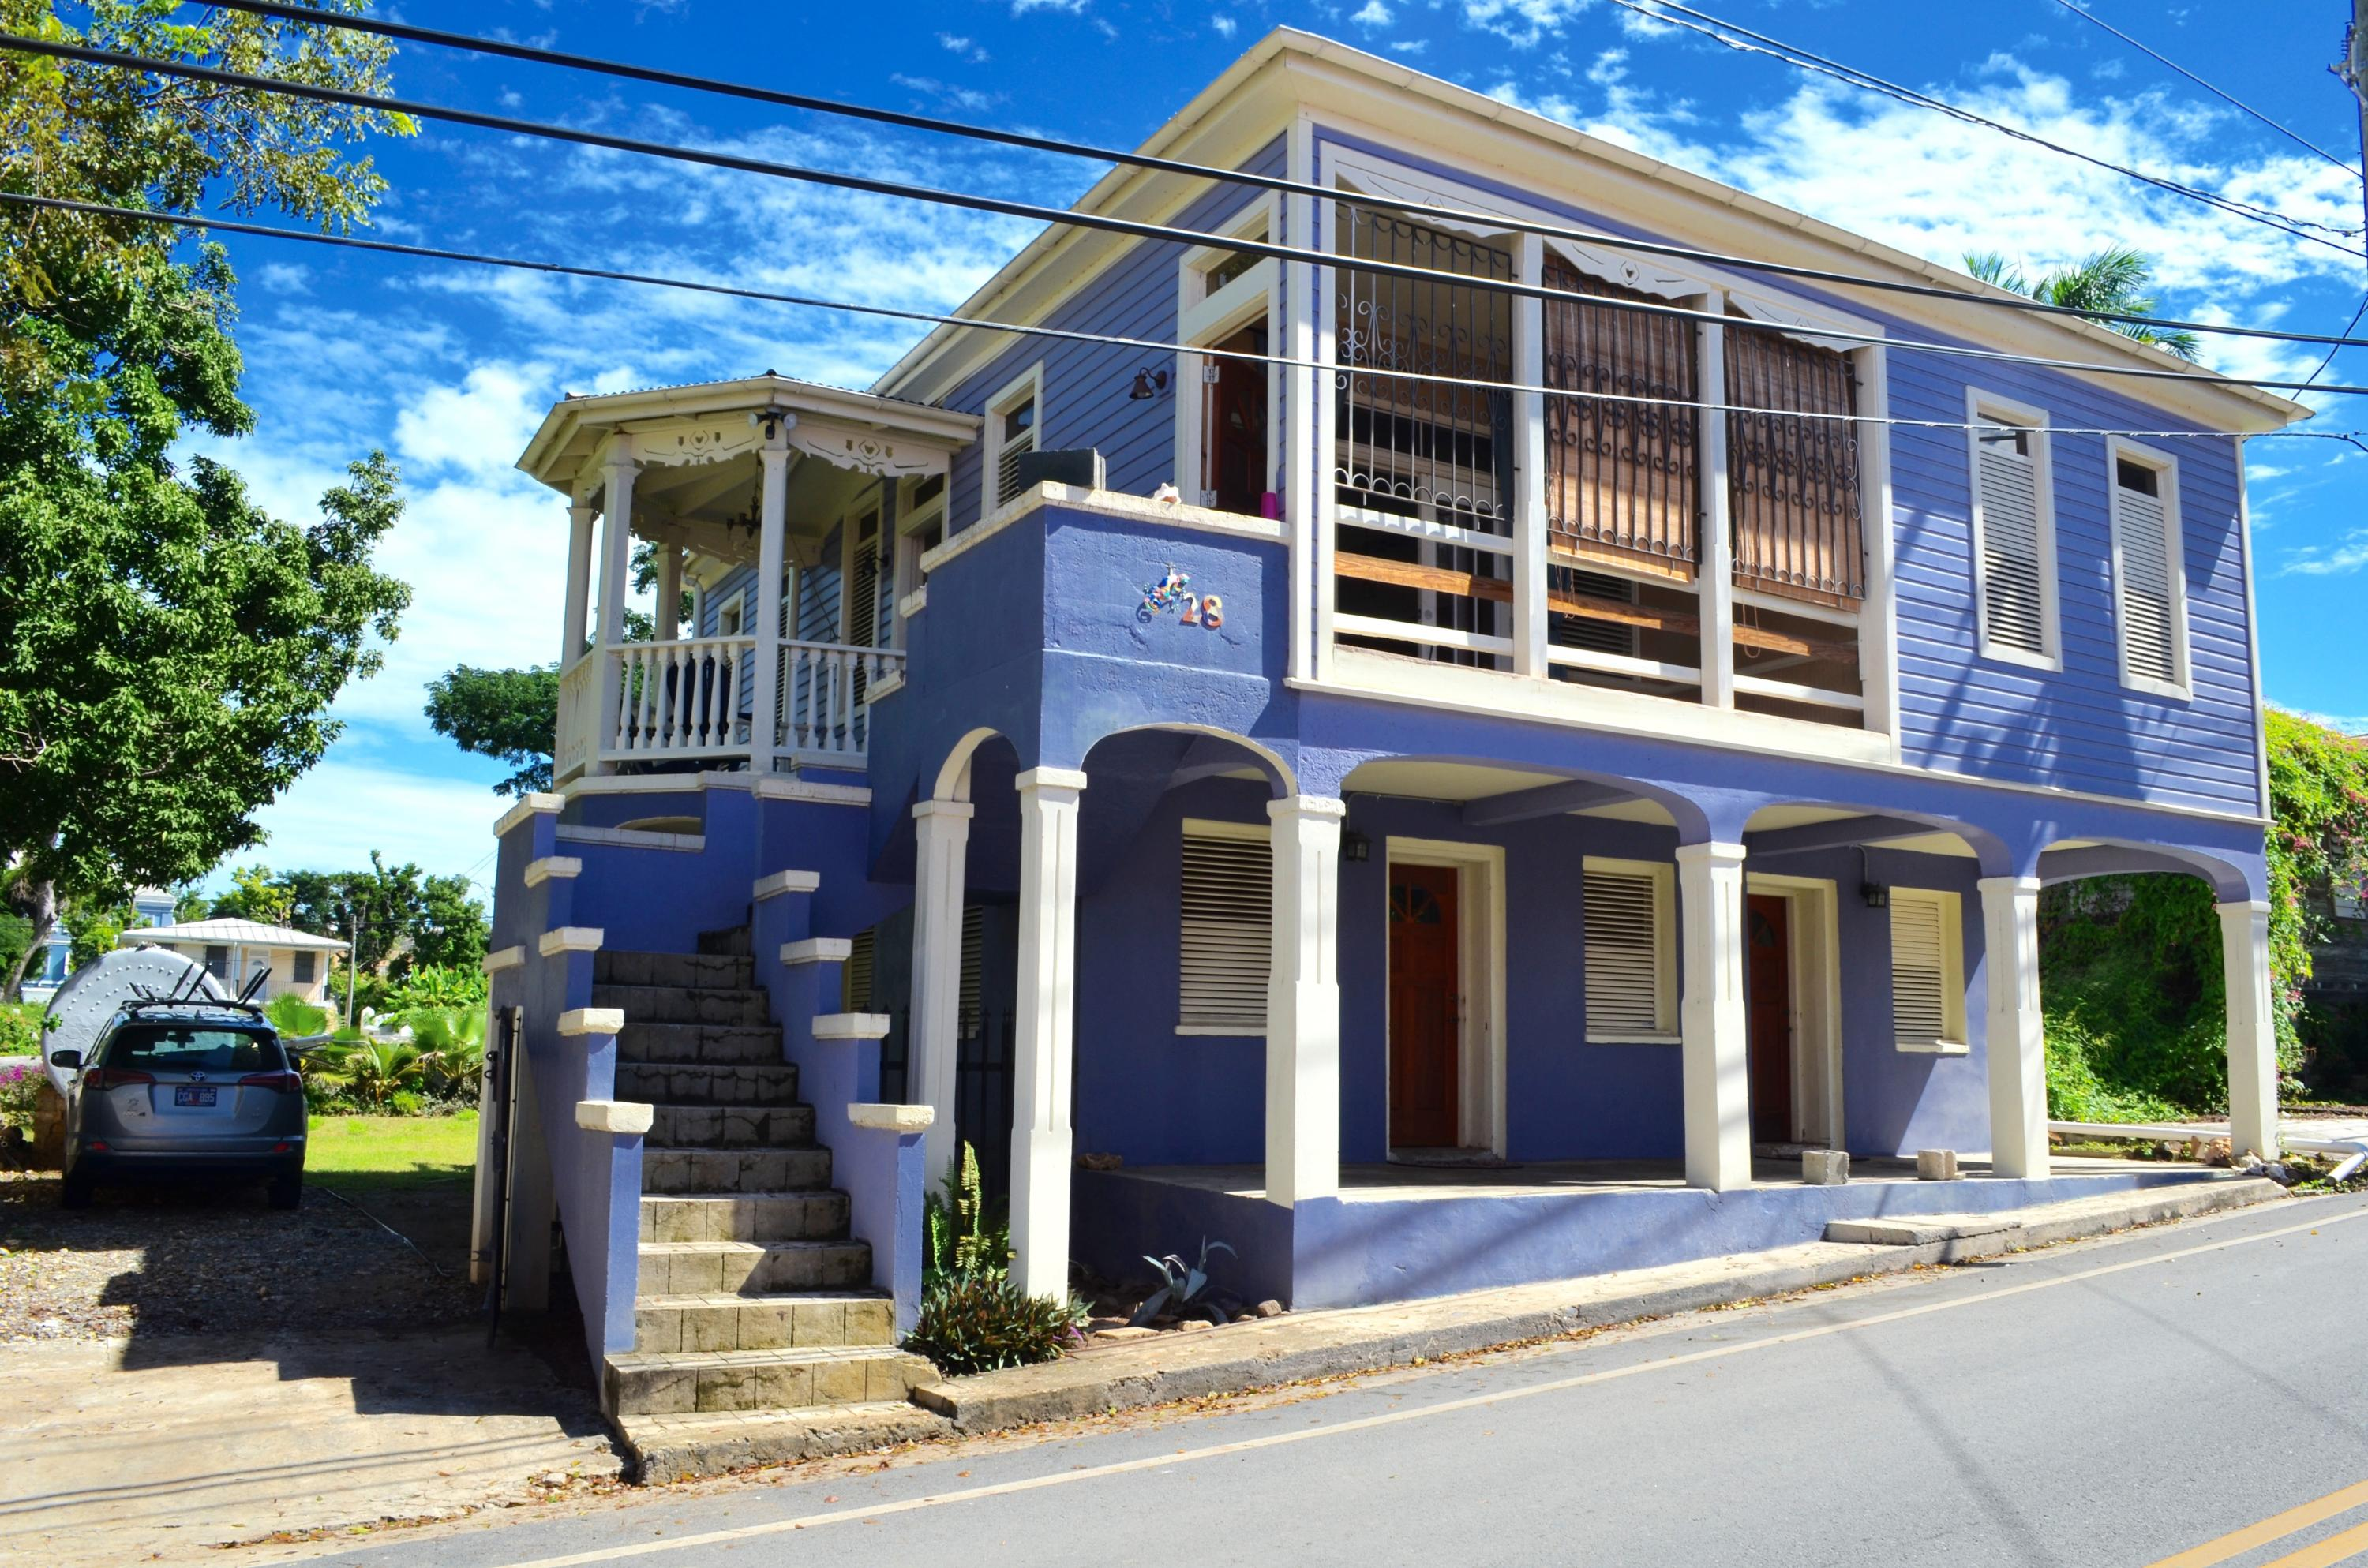 Multi-Family Home for Sale at 28 Queen Street F'STED 28 Queen Street F'STED St Croix, Virgin Islands 00840 United States Virgin Islands